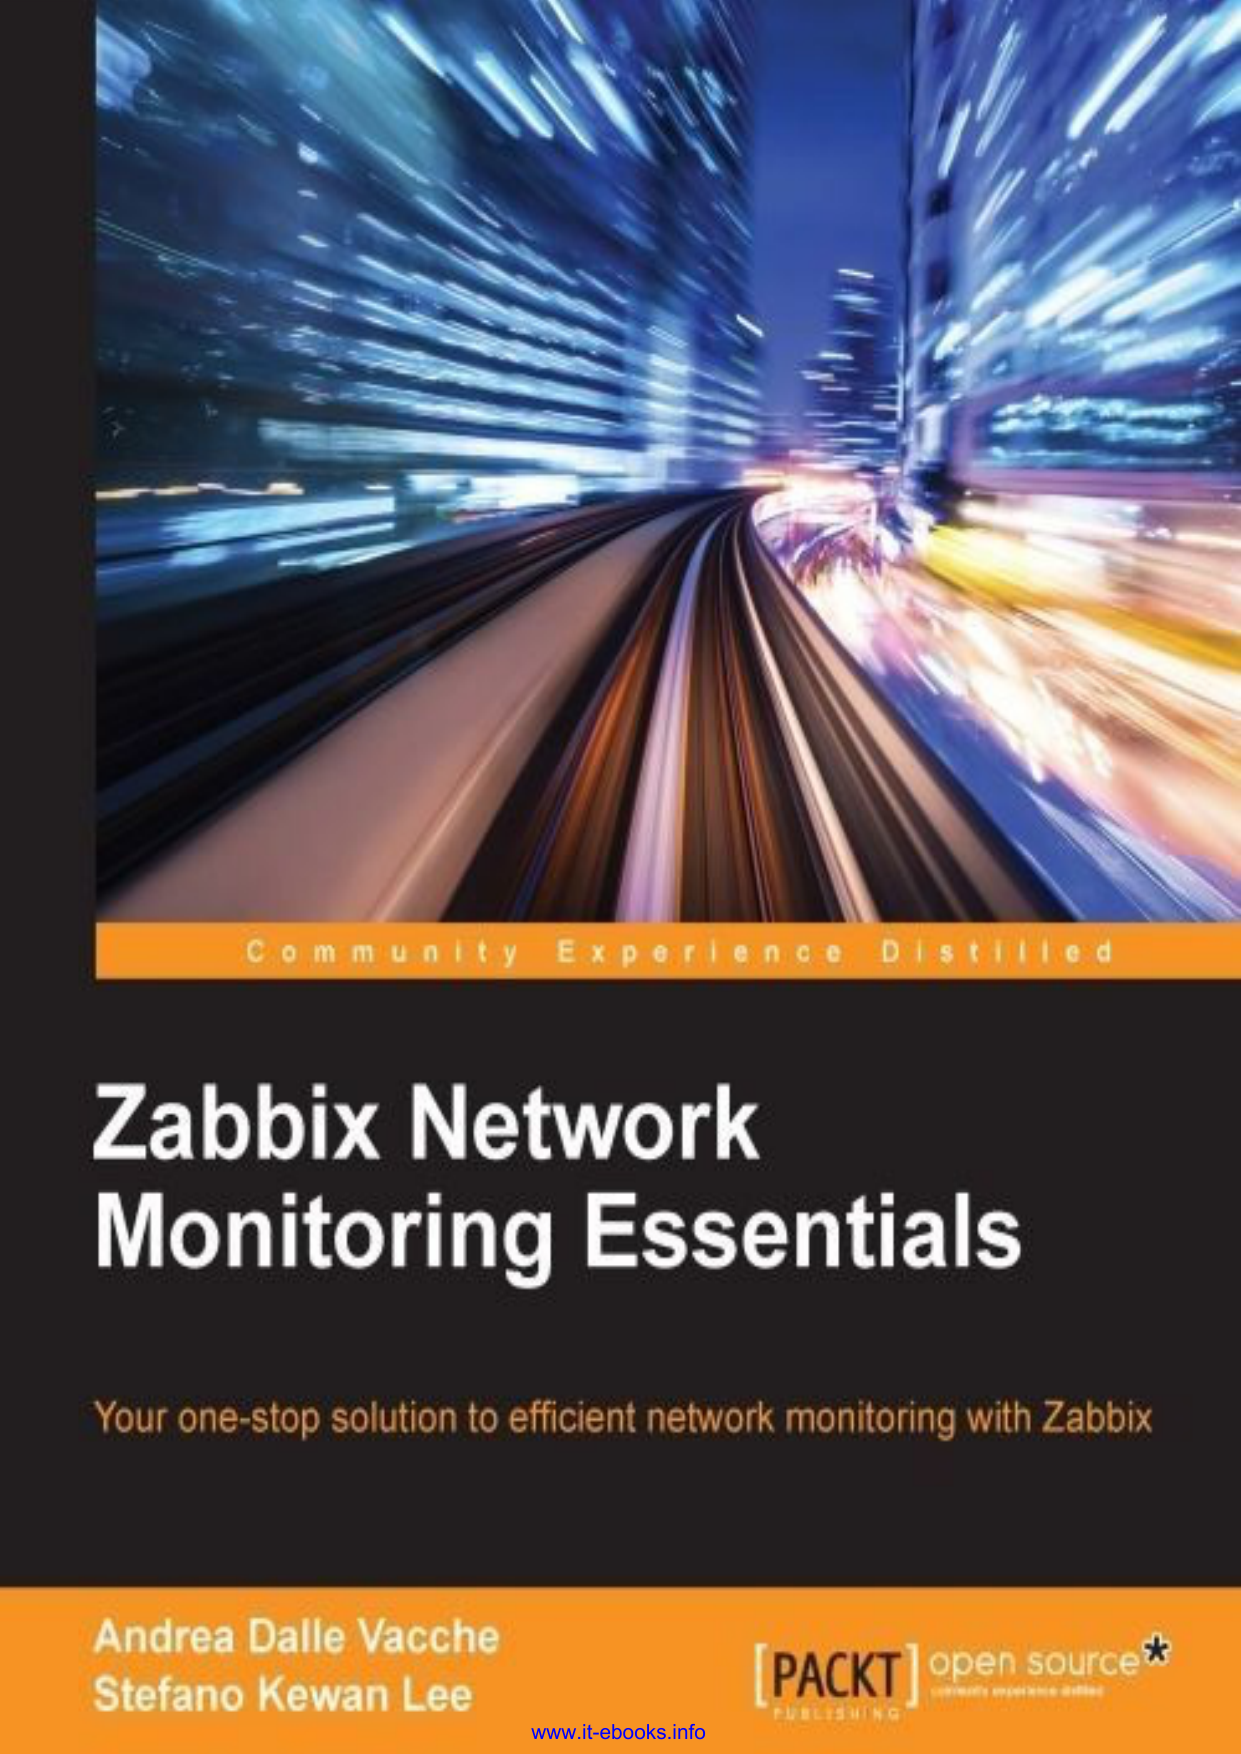 دانلود کتاب Zabbix Network Monitoring Essentials